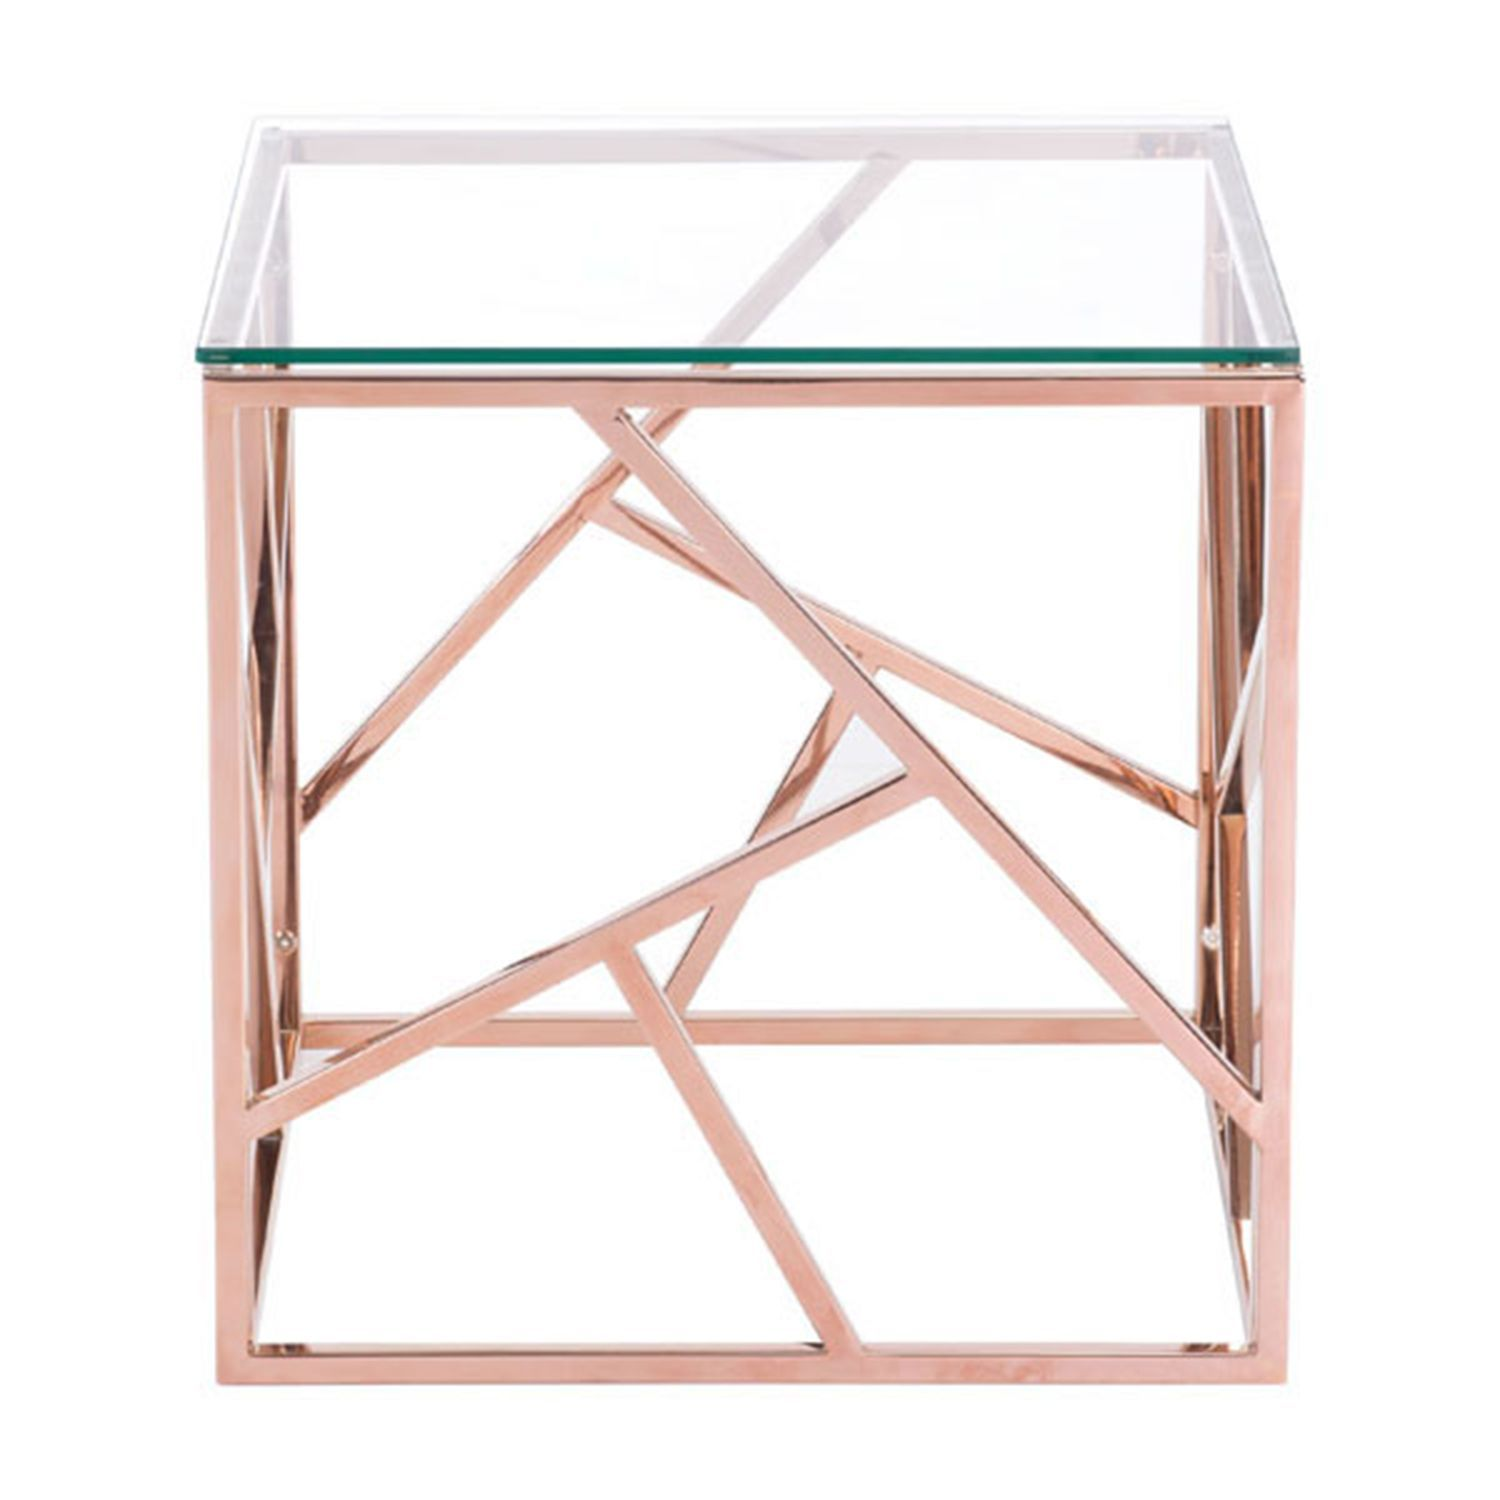 null products decor bedroom and rose gold accent table cage nate berkus bedding outdoor furniture retailers contemporary marble dining dale tiffany lamps clearance corner teal